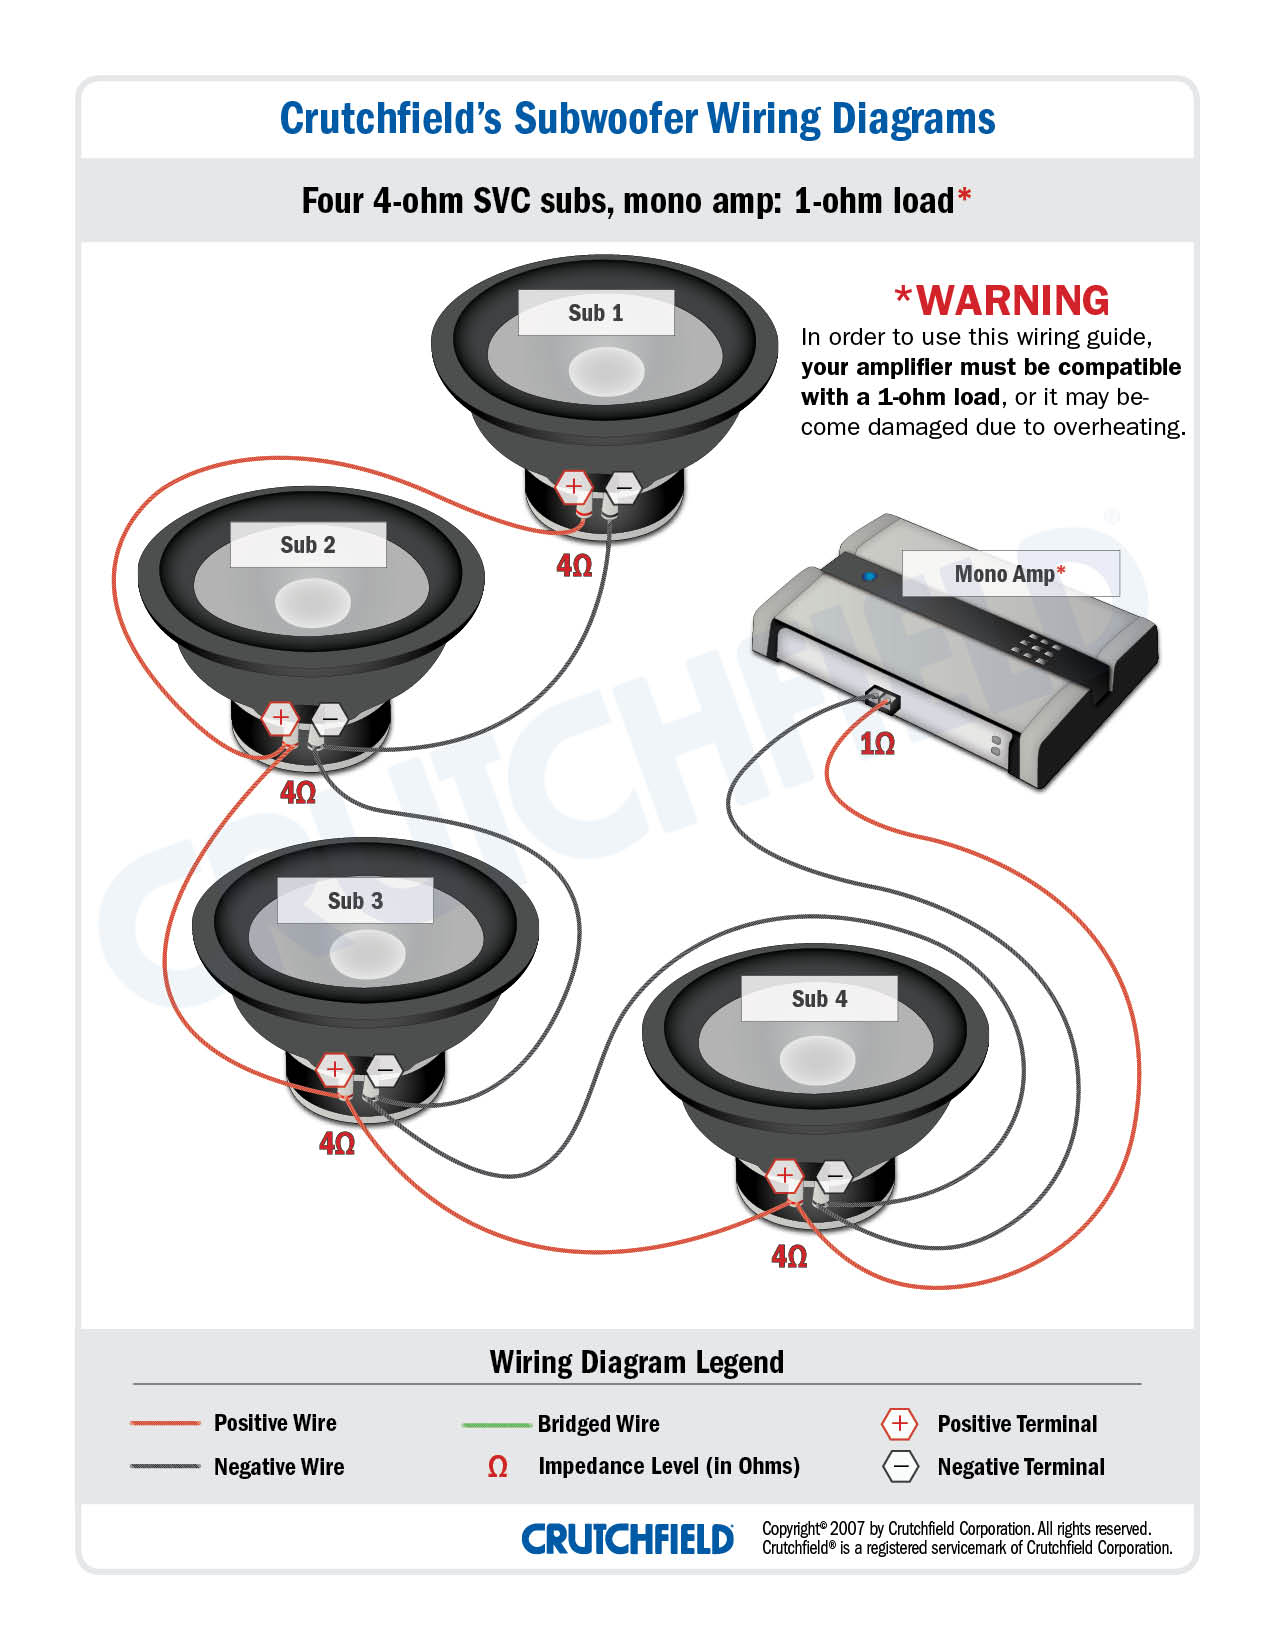 crutchfield subwoofer wiring diagram 6 pin trailer with brakes subwoofers — what's all this about ohms?